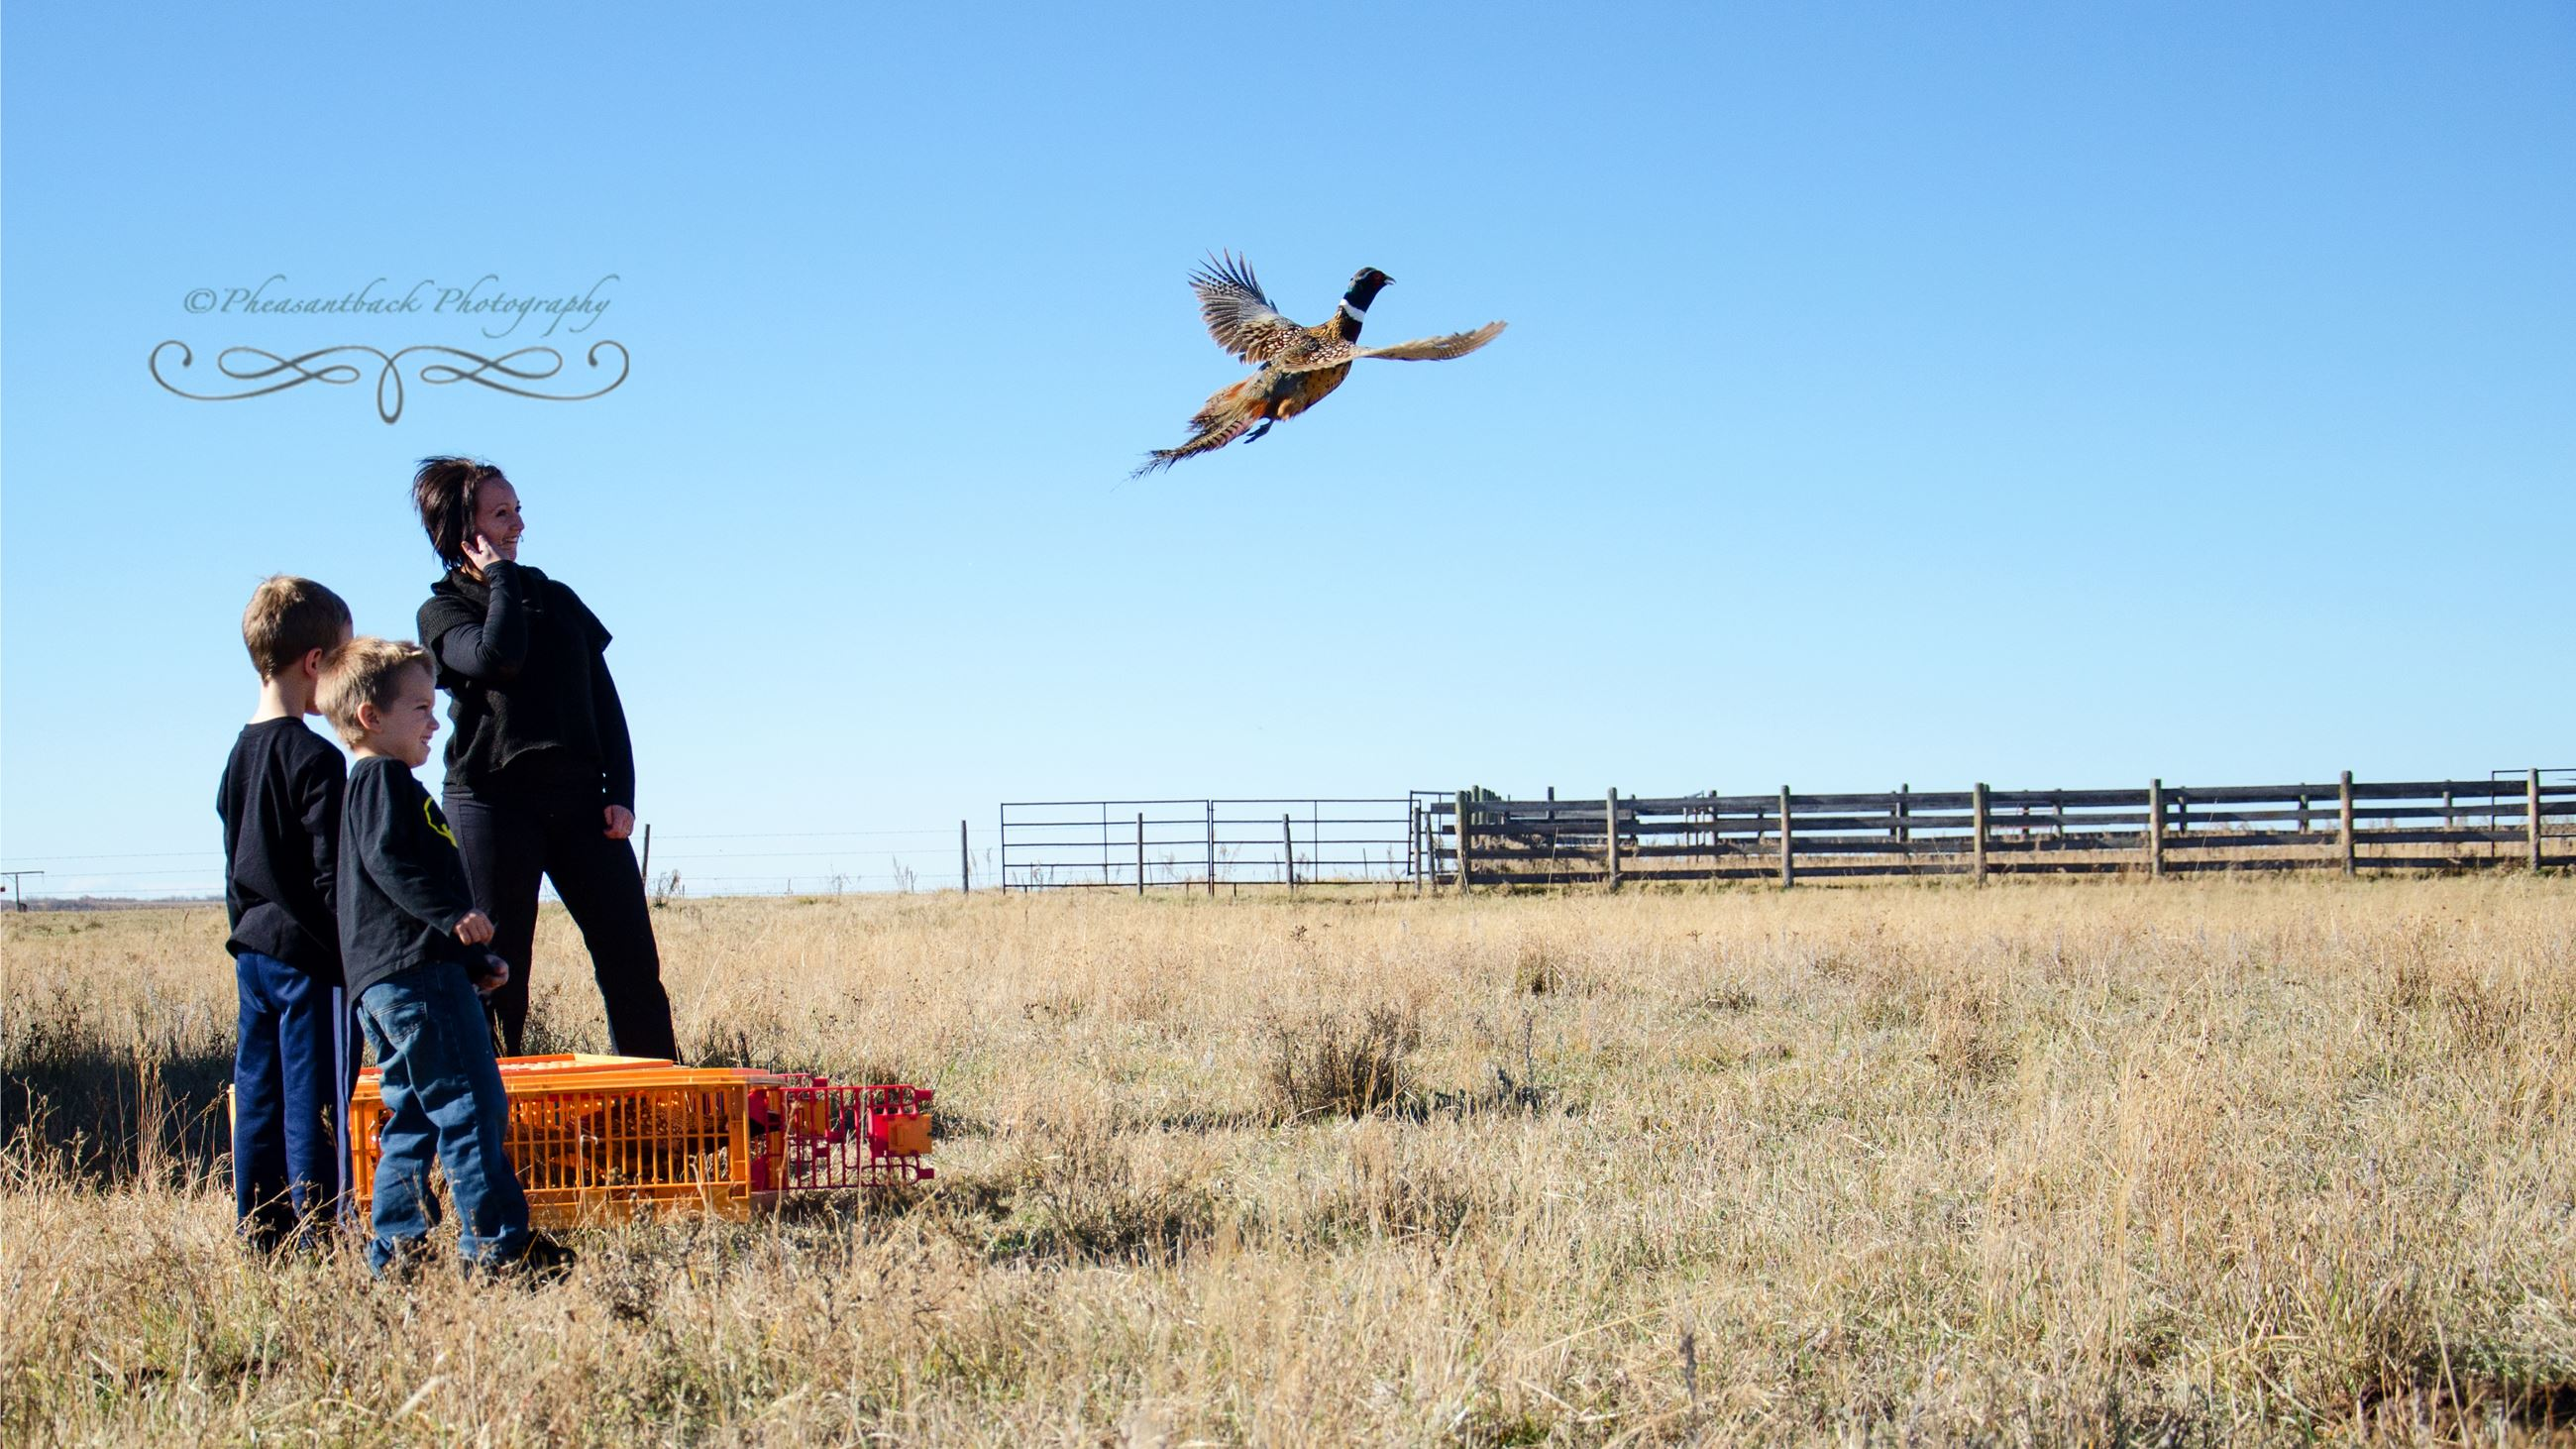 Pheasant Release- Pheasantback Photography